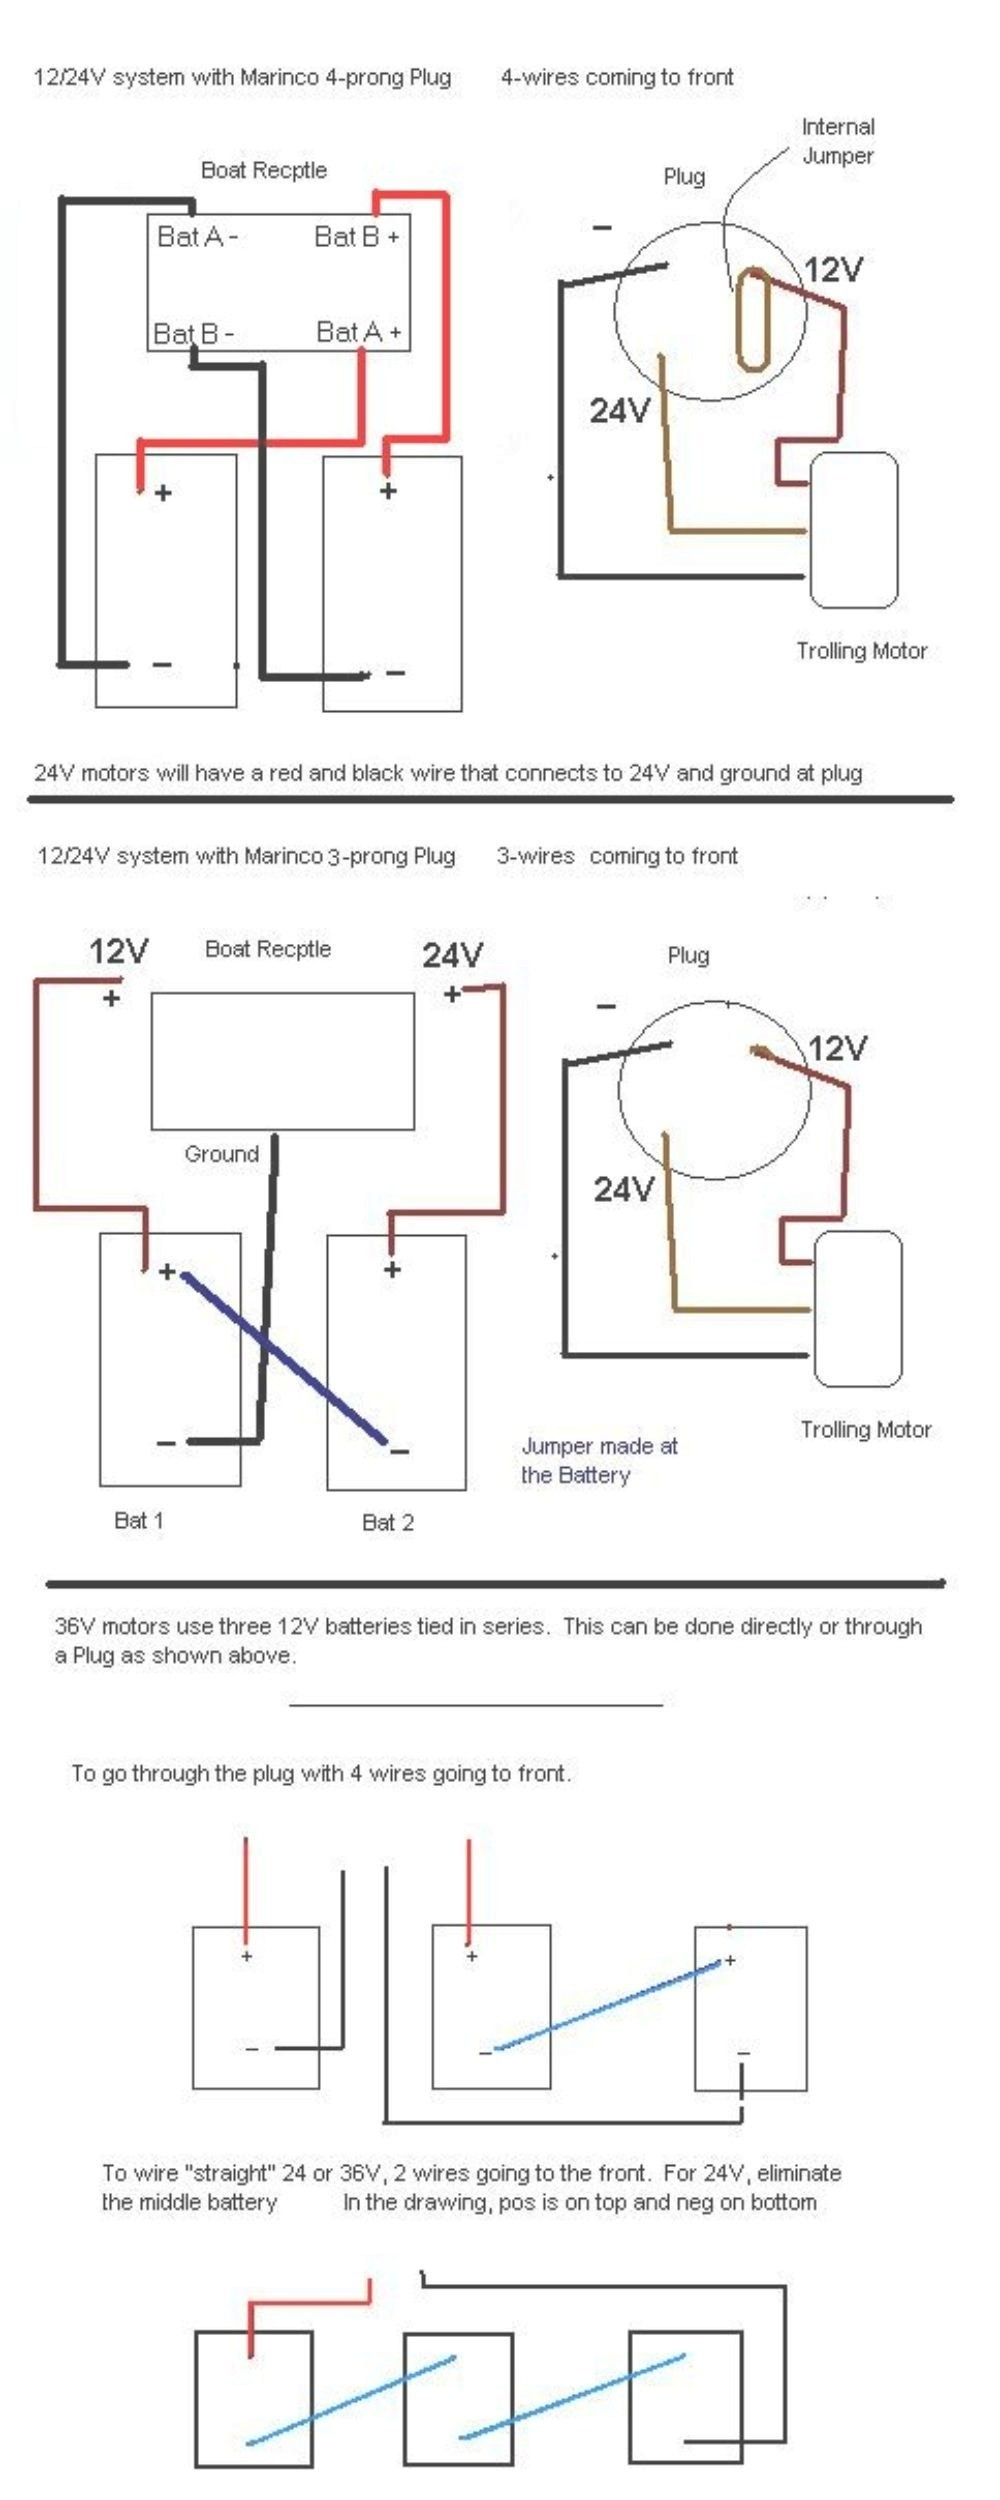 12 24V Trolling Motor Wiring Diagram | Wiring Diagram - Minn Kota Trolling Motor Plug And Receptacle Wiring Diagram